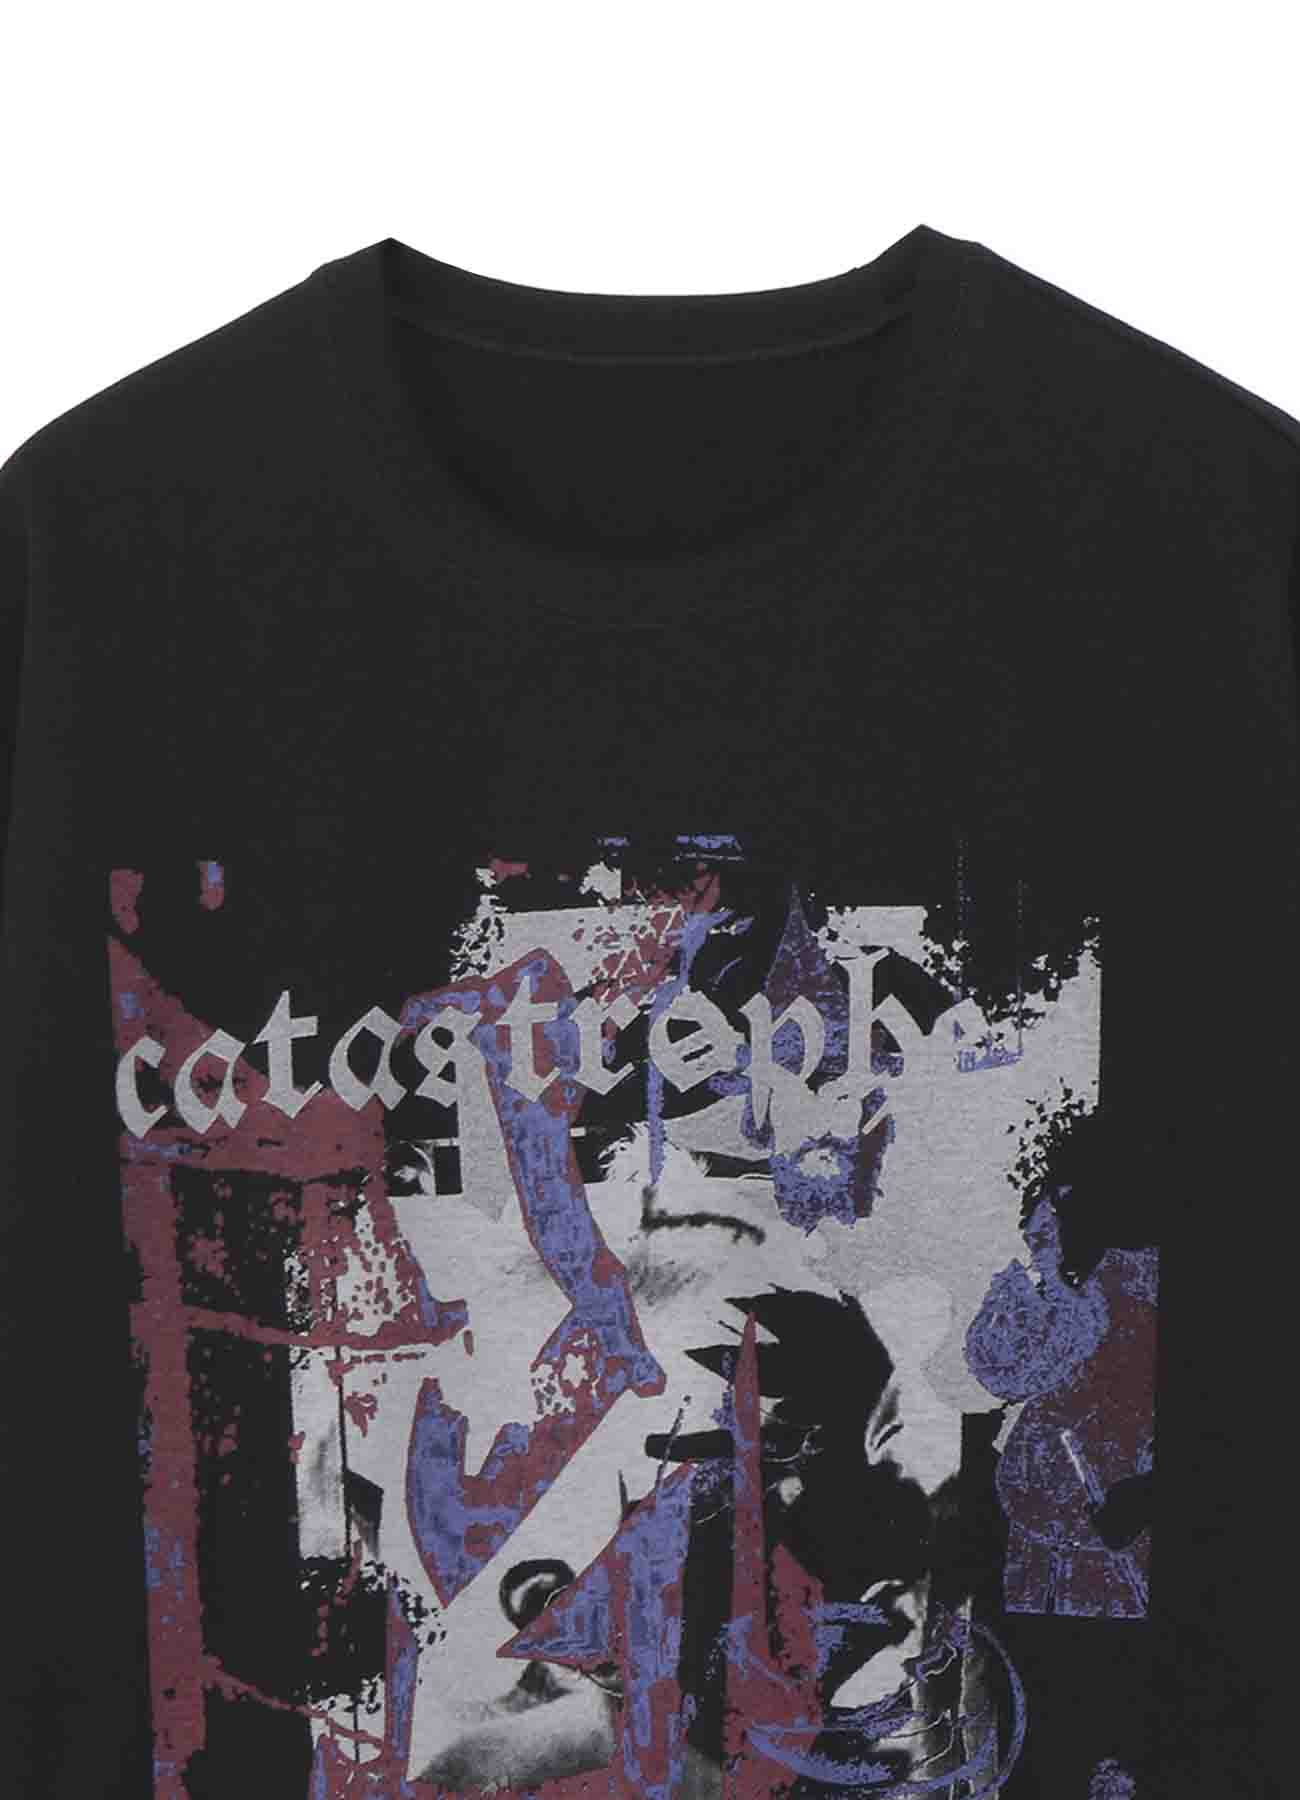 20/CottonJersey Catastrophe T-Shirt